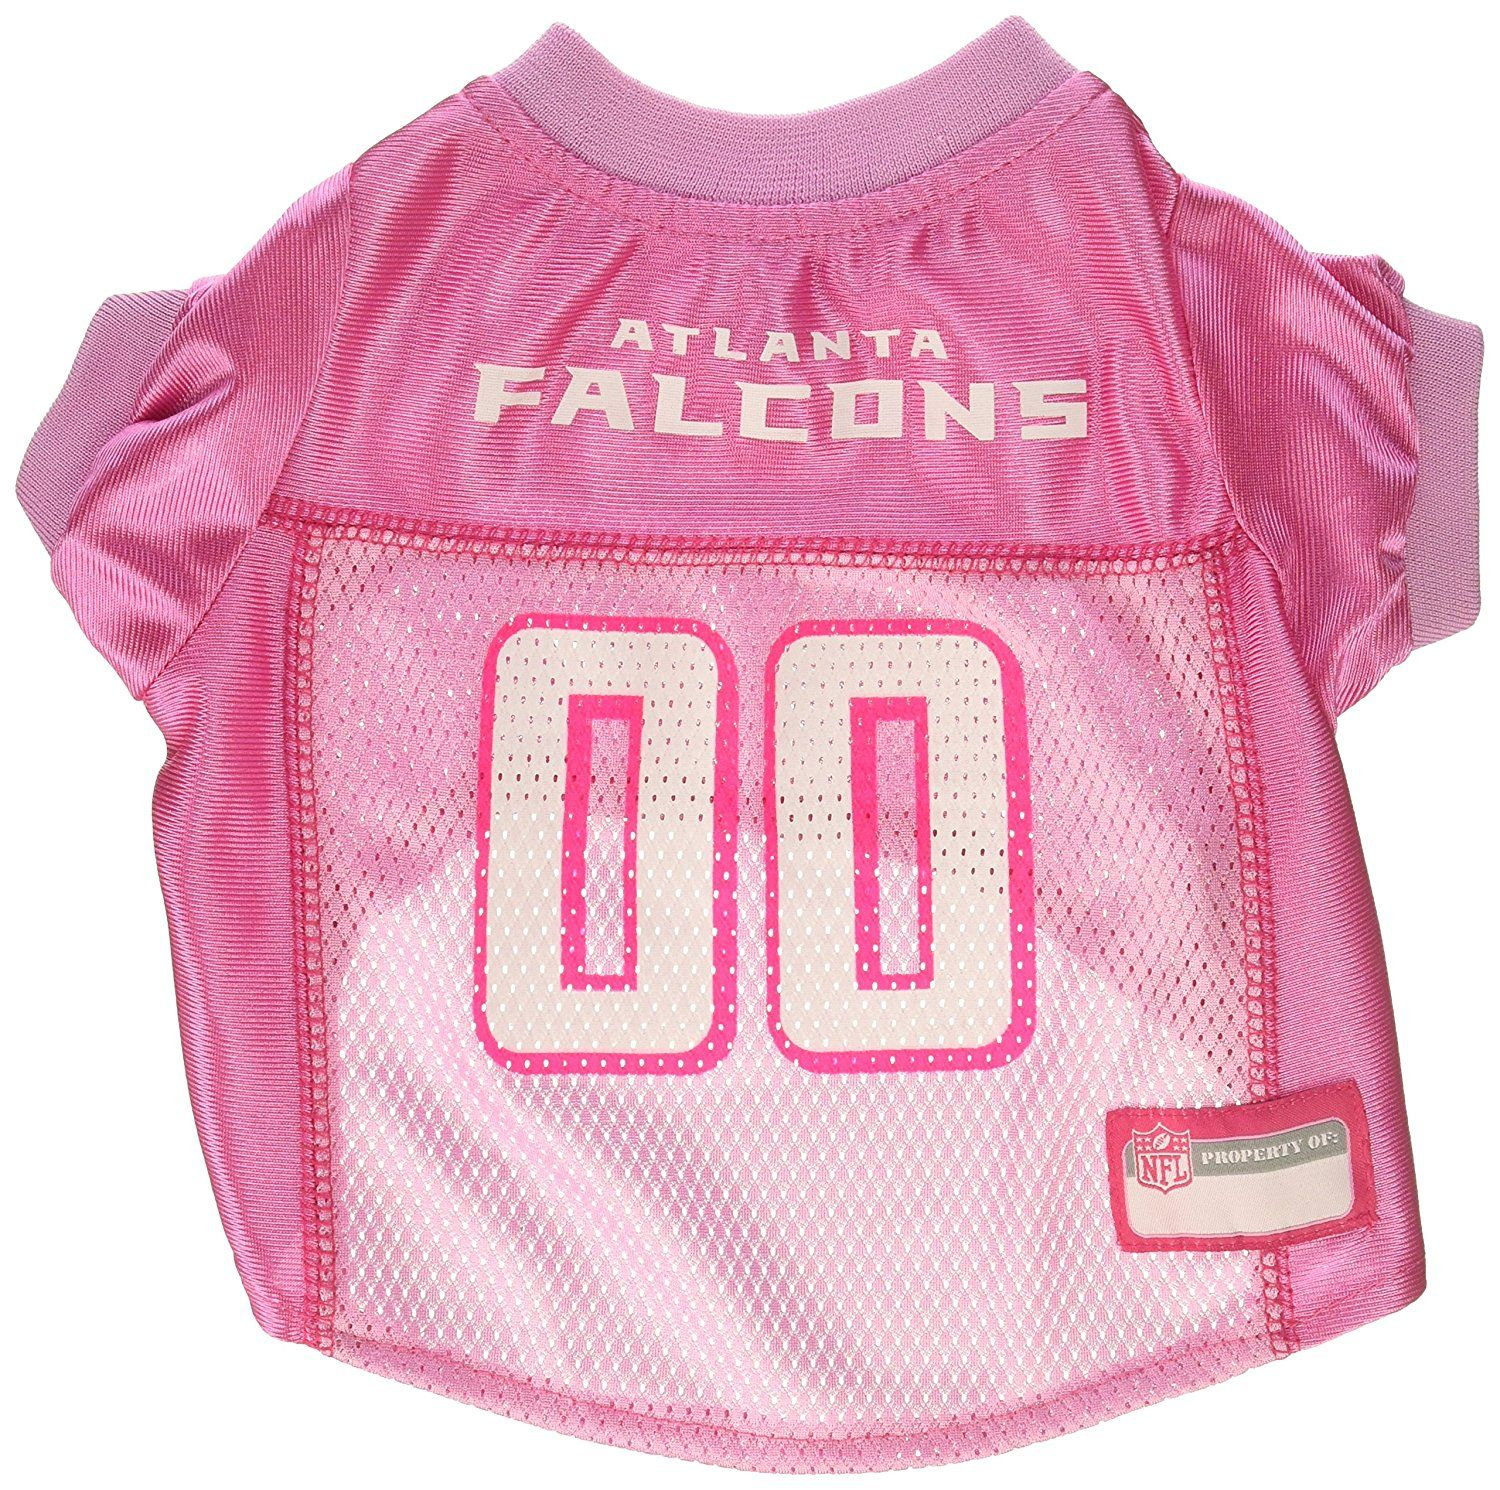 Pets First NFL Atlanta Falcons Jersey Check this awesome product